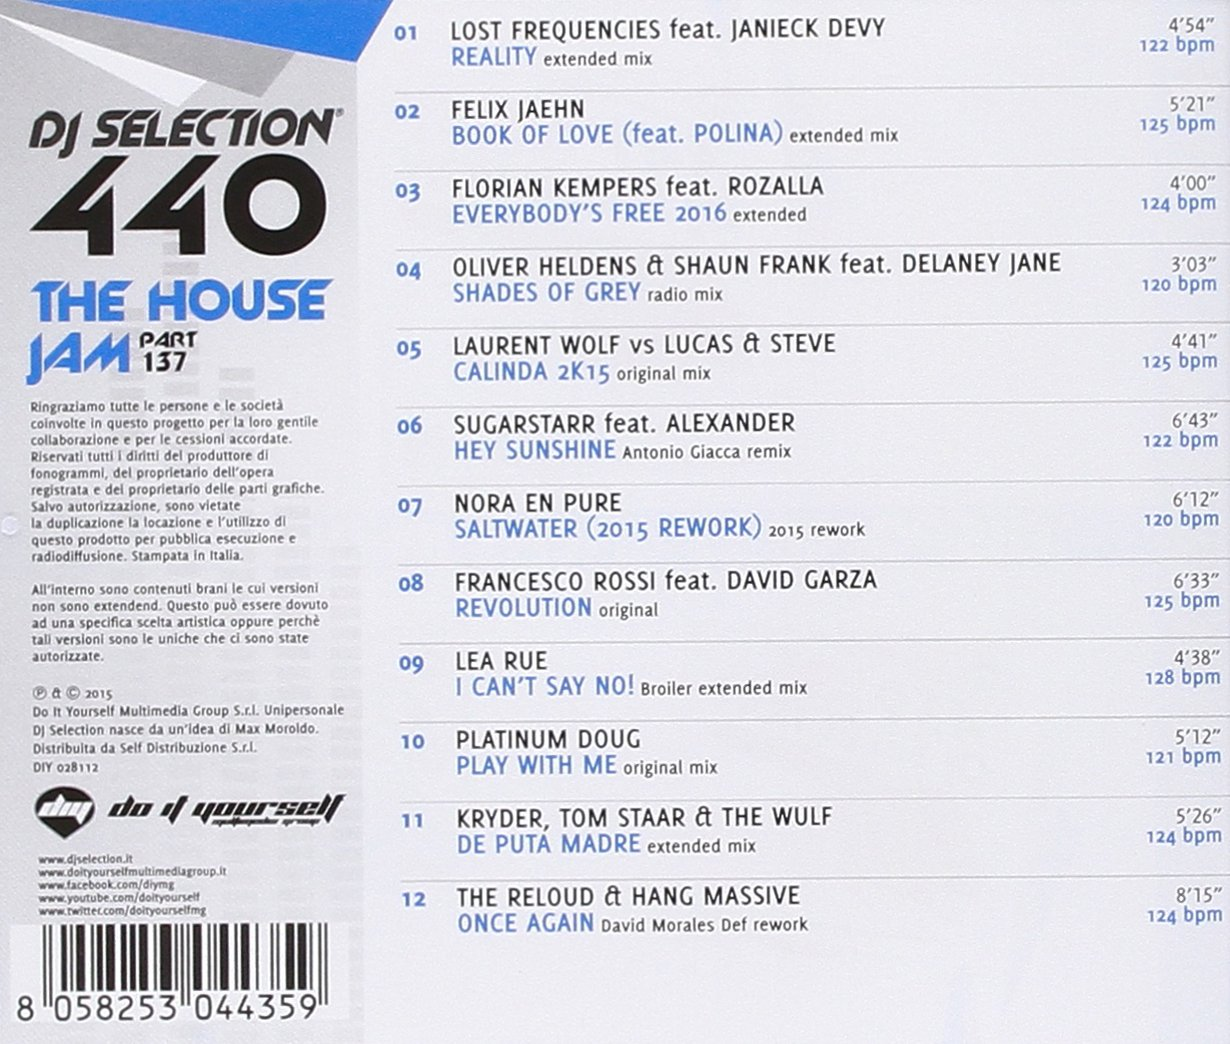 VARIOUS ARTISTS - DJ Selection 440 - House Jam Vol 138 / Various